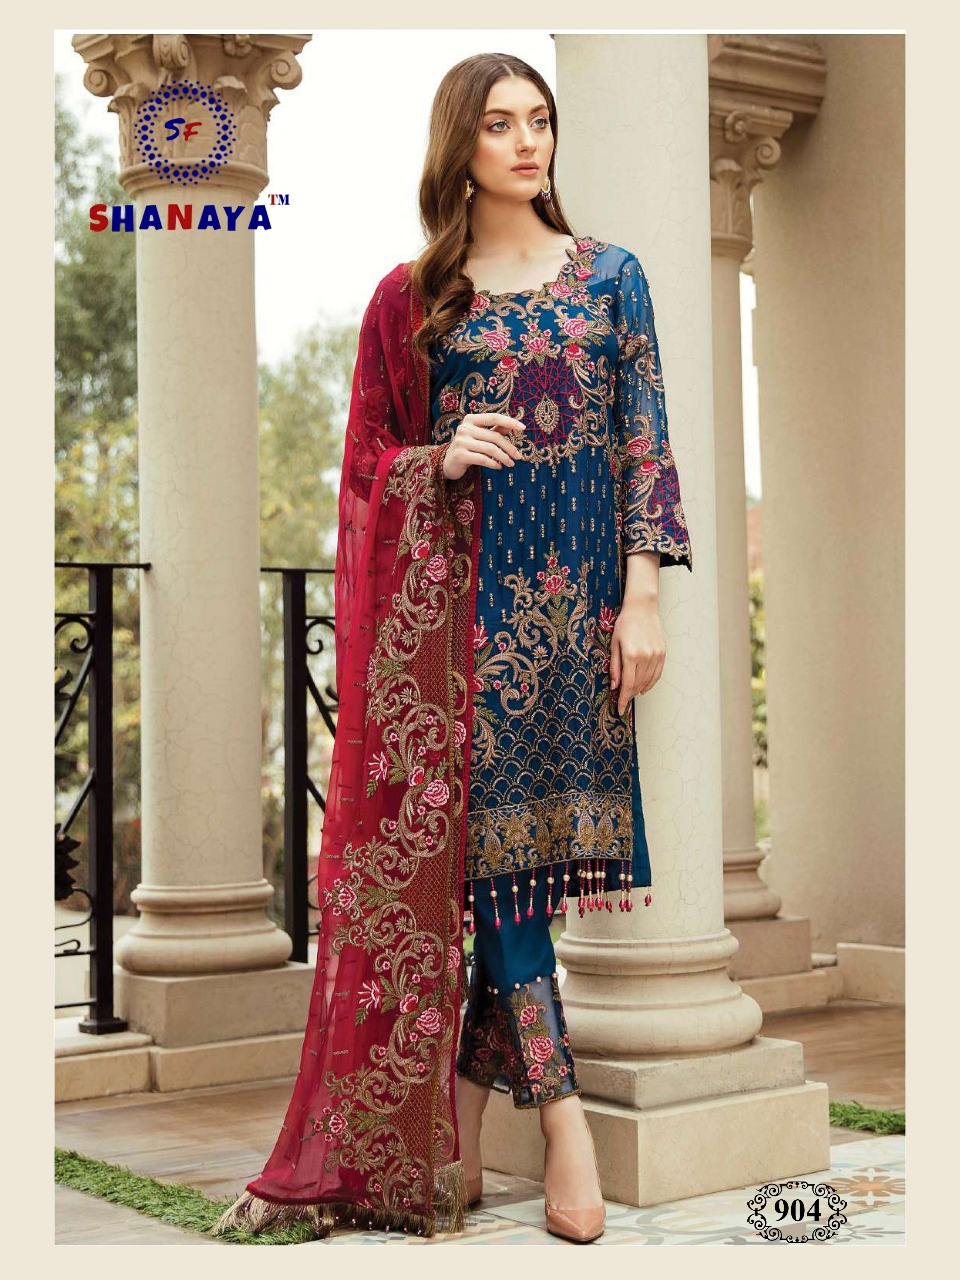 SHANAYA ROSE AFROZEH IN SINGLE DESIGN NO 902 SALWAR SUITS COLLECTION (3)